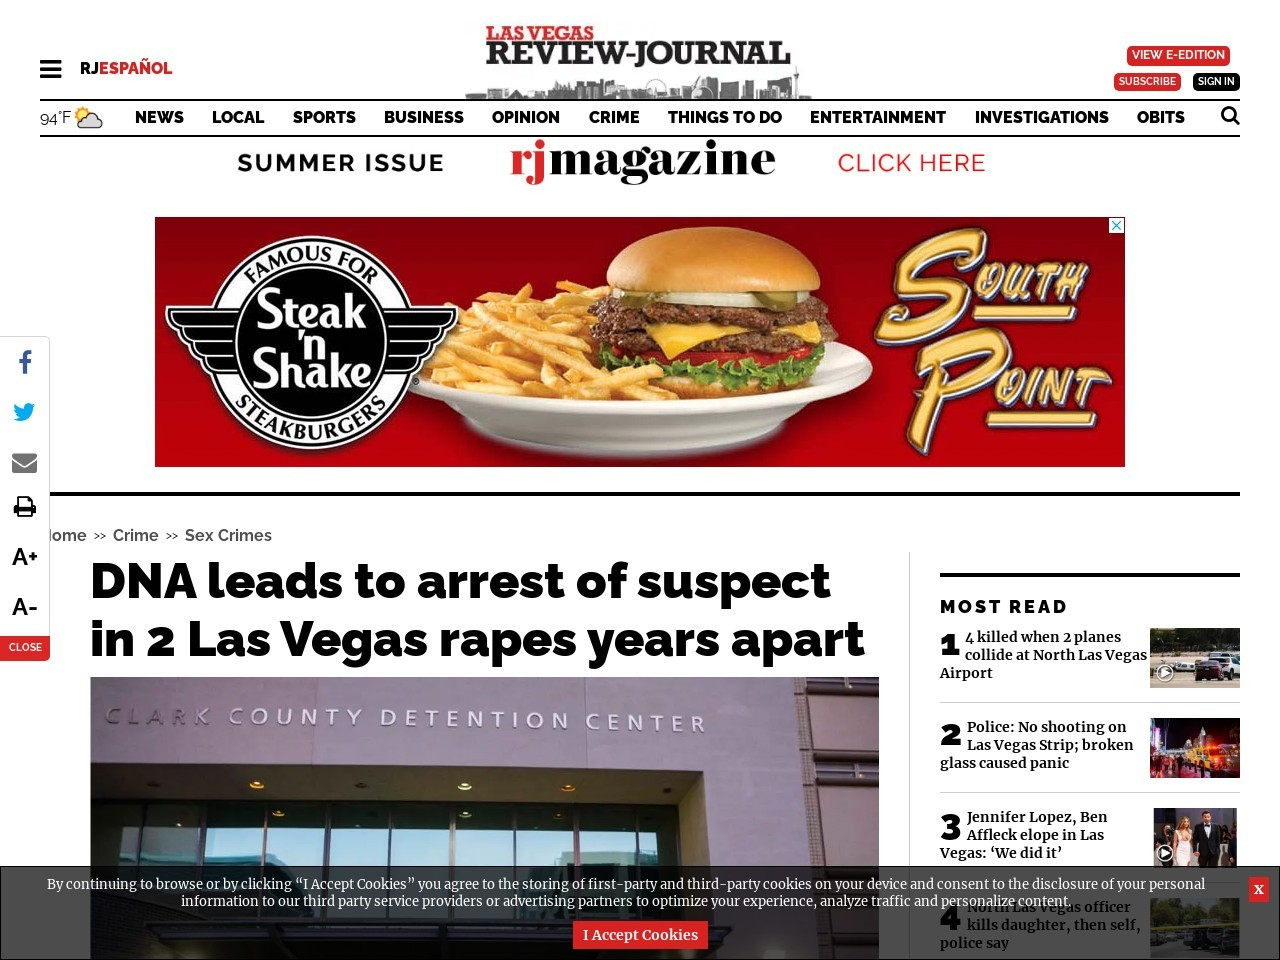 DNA leads to arrest of suspect in 2 Las Vegas rapes years apart